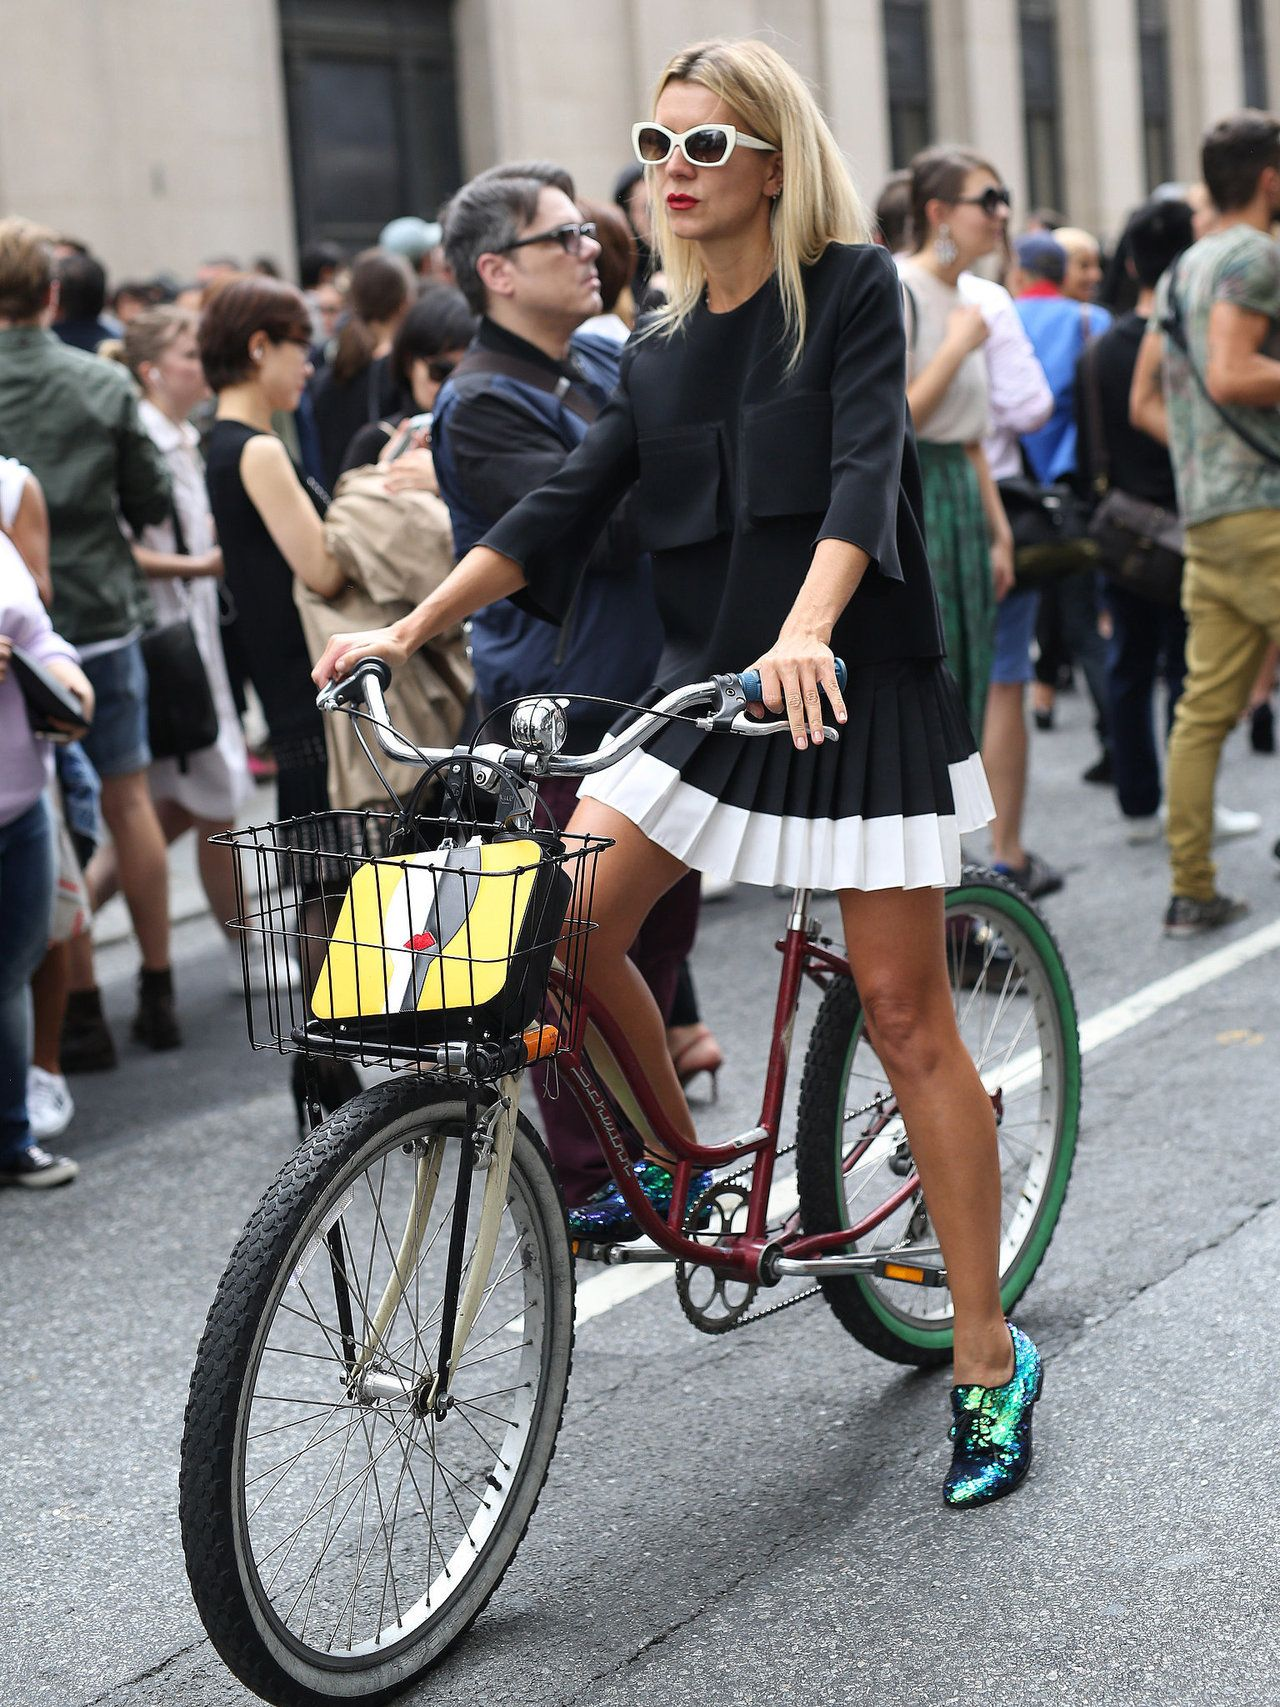 """Odd - No one appears to be noticing this stylish girl and her bike?? Also, wonder if the choice of non-matching tyres was a concious one?. Do like it though."" Thanks to Katharina for sharing this pin. .MAKETRAX.net - Bicycle STYLE RIDERS"